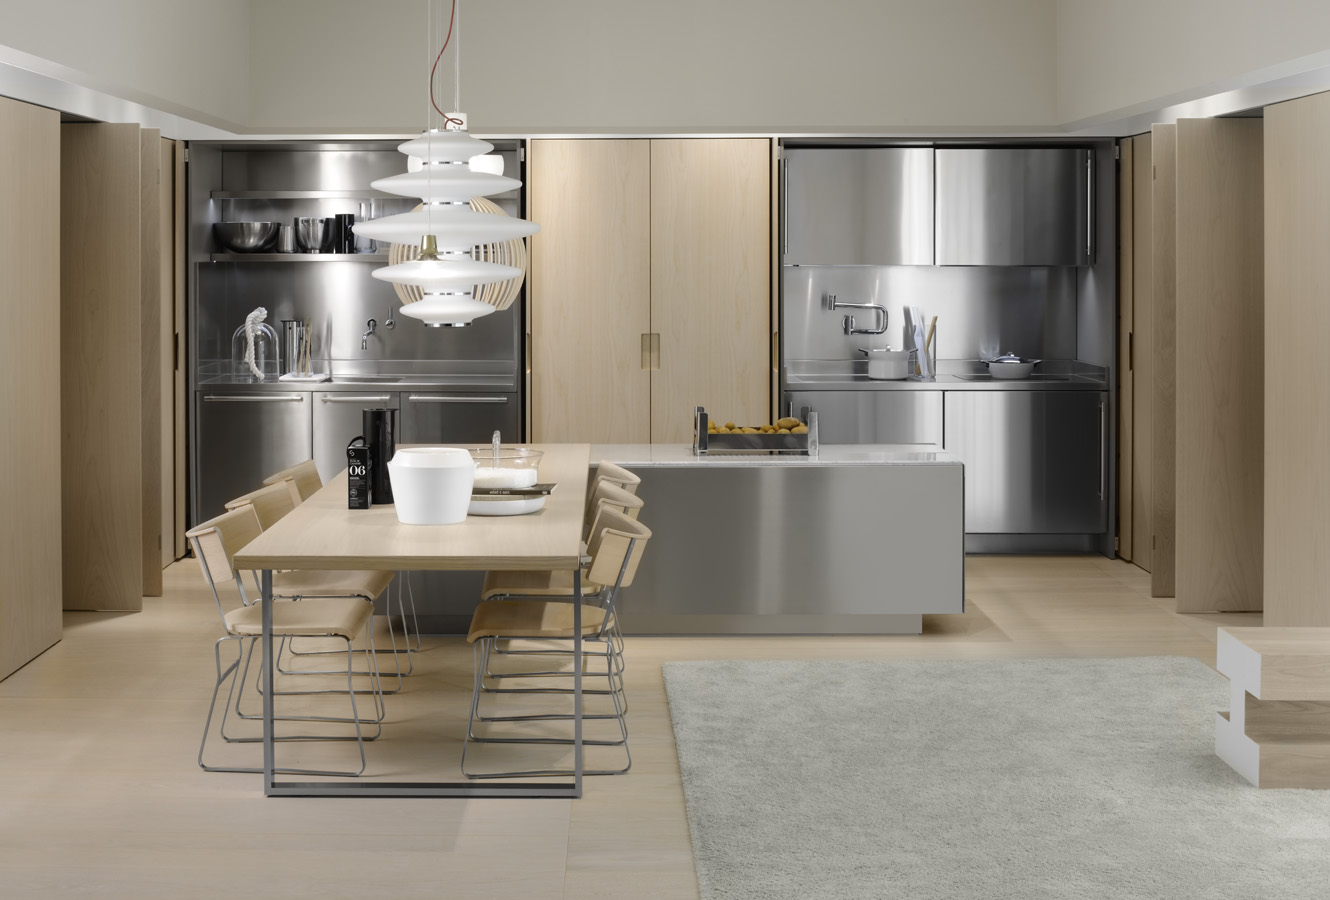 Modern italian kitchen design from arclinea for Italian kitchen design